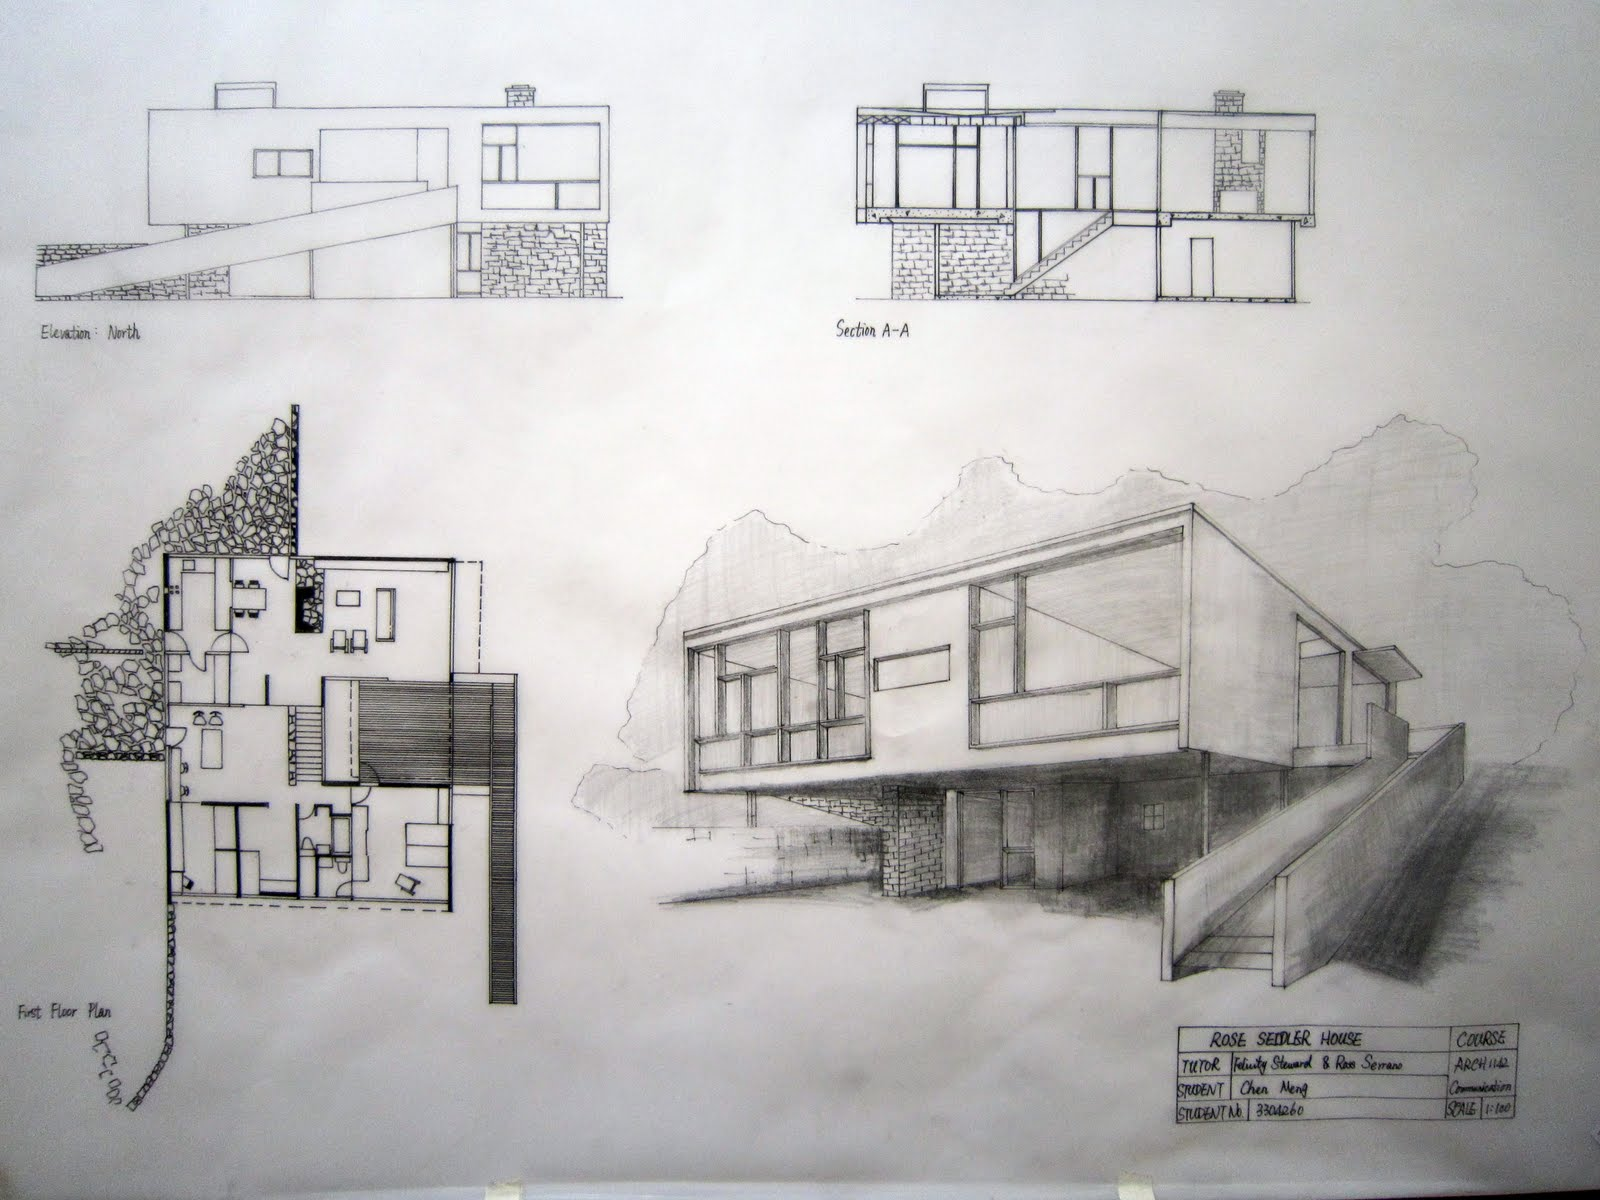 Meng Chen  FINAL EXERCISE   ROSE SEIDLER HOUSEThis is a series of hand drawings about ROSE SEIDLER HOUSE including plans  sections  elevations and perspective drawings  This is an effecitive way